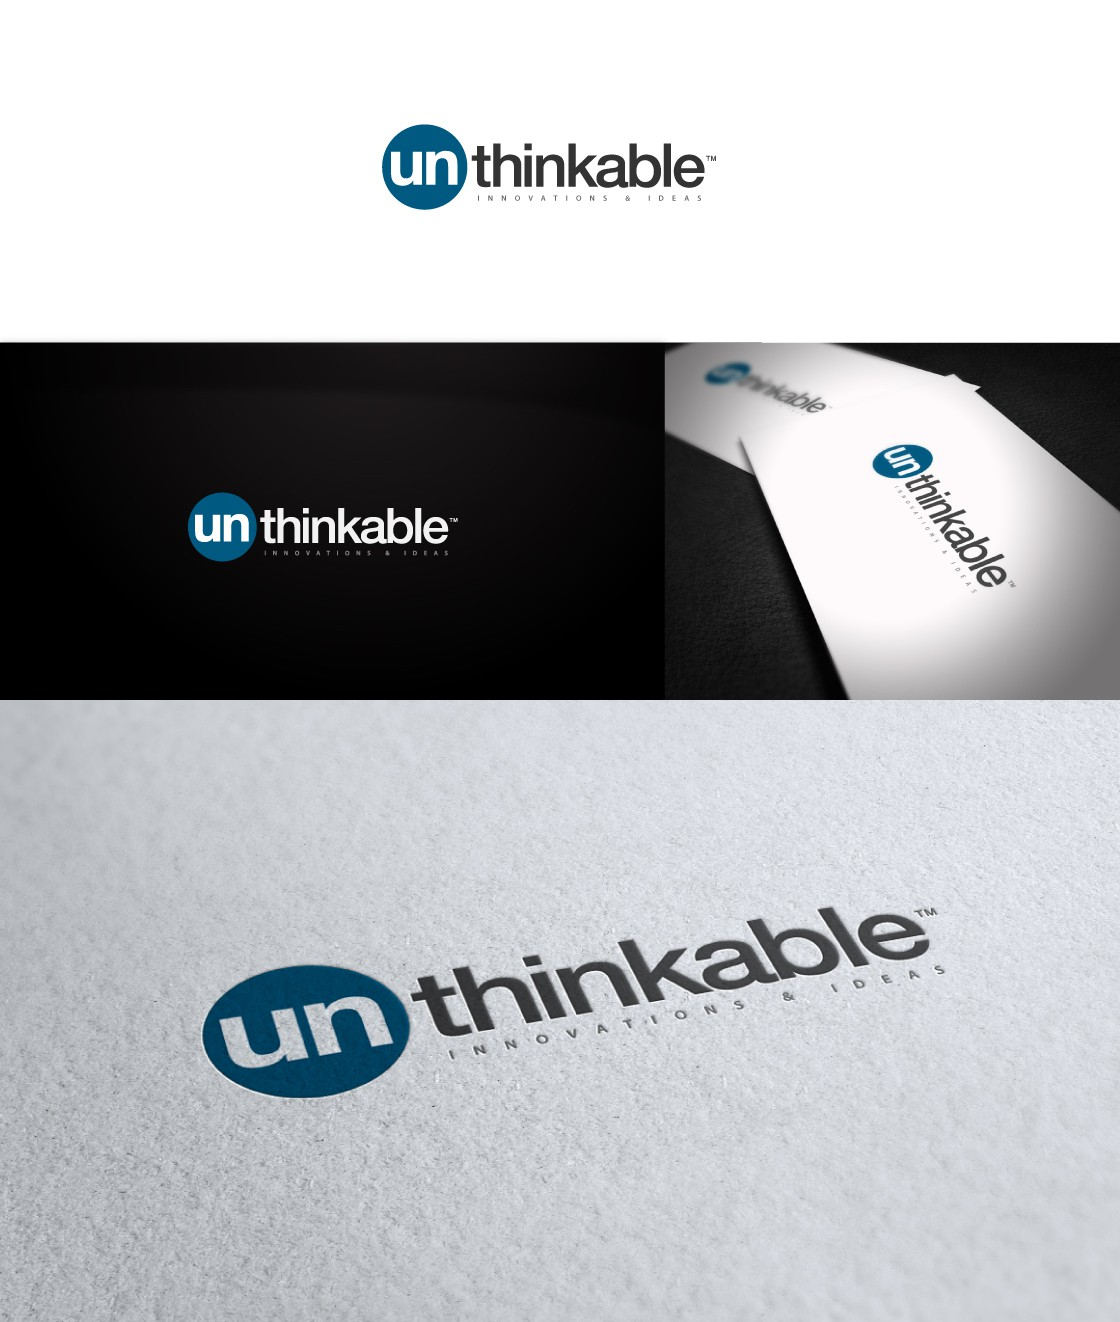 Help un - thinkable INNOVATIONS & IDEAS with a new logo